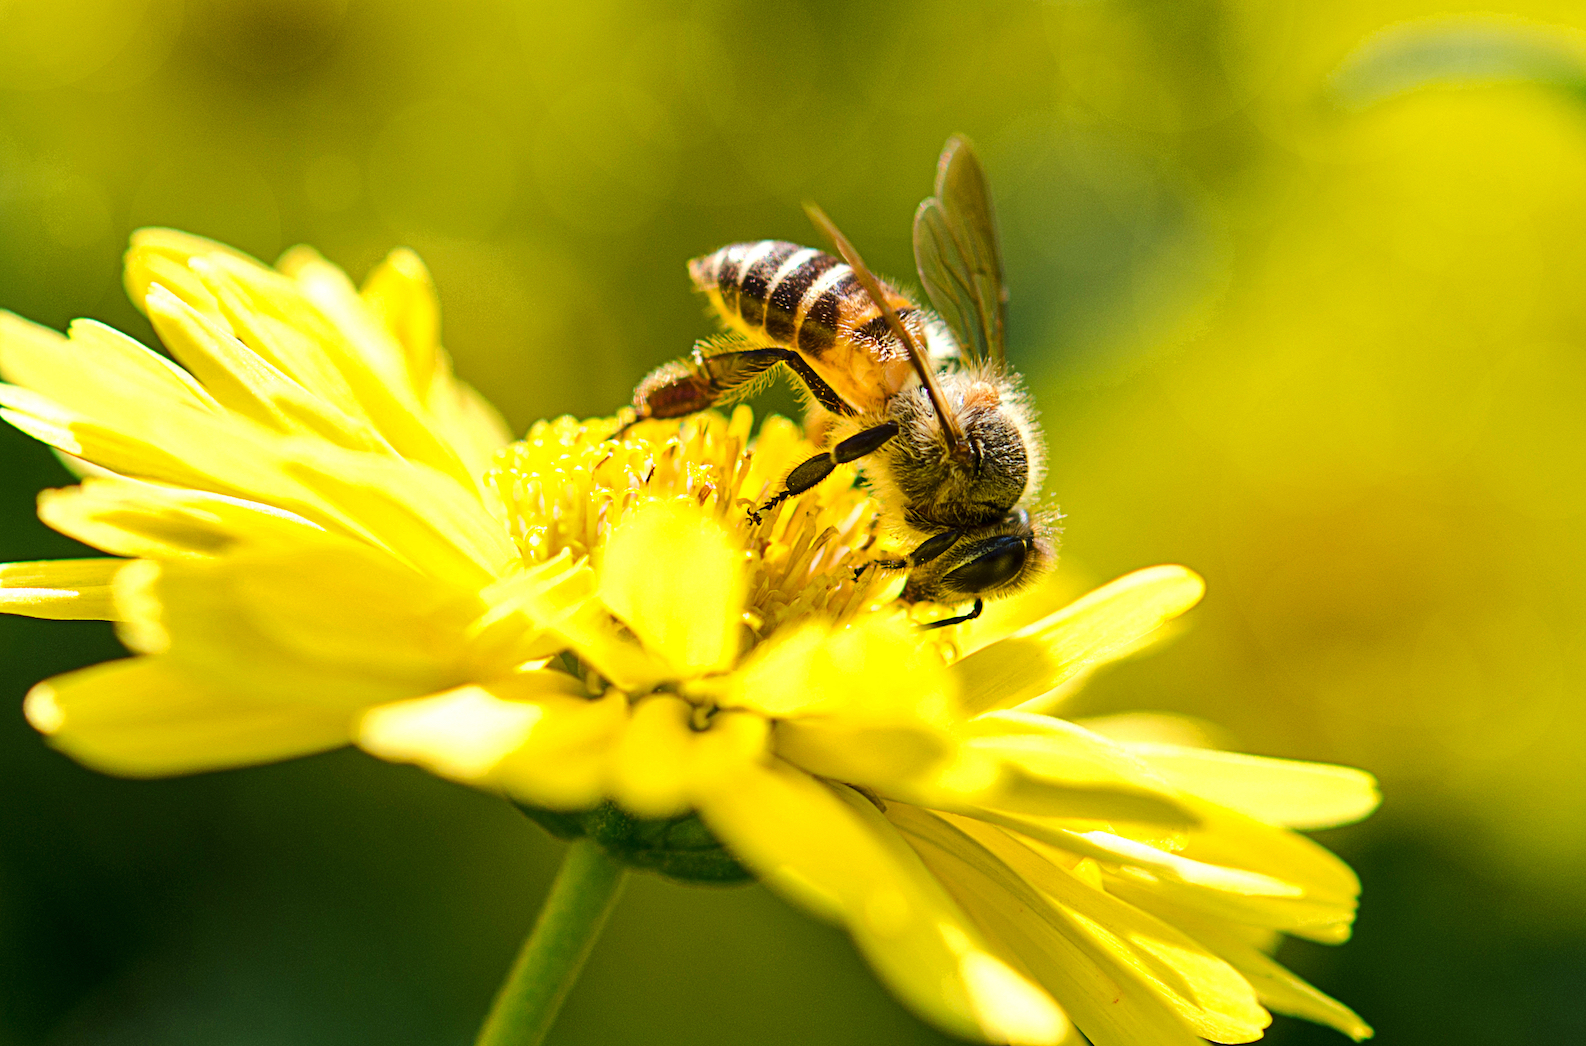 The largest field study to date concludes that widely used pesticides called neonicotinoids weakened honeybee hives in Europe.